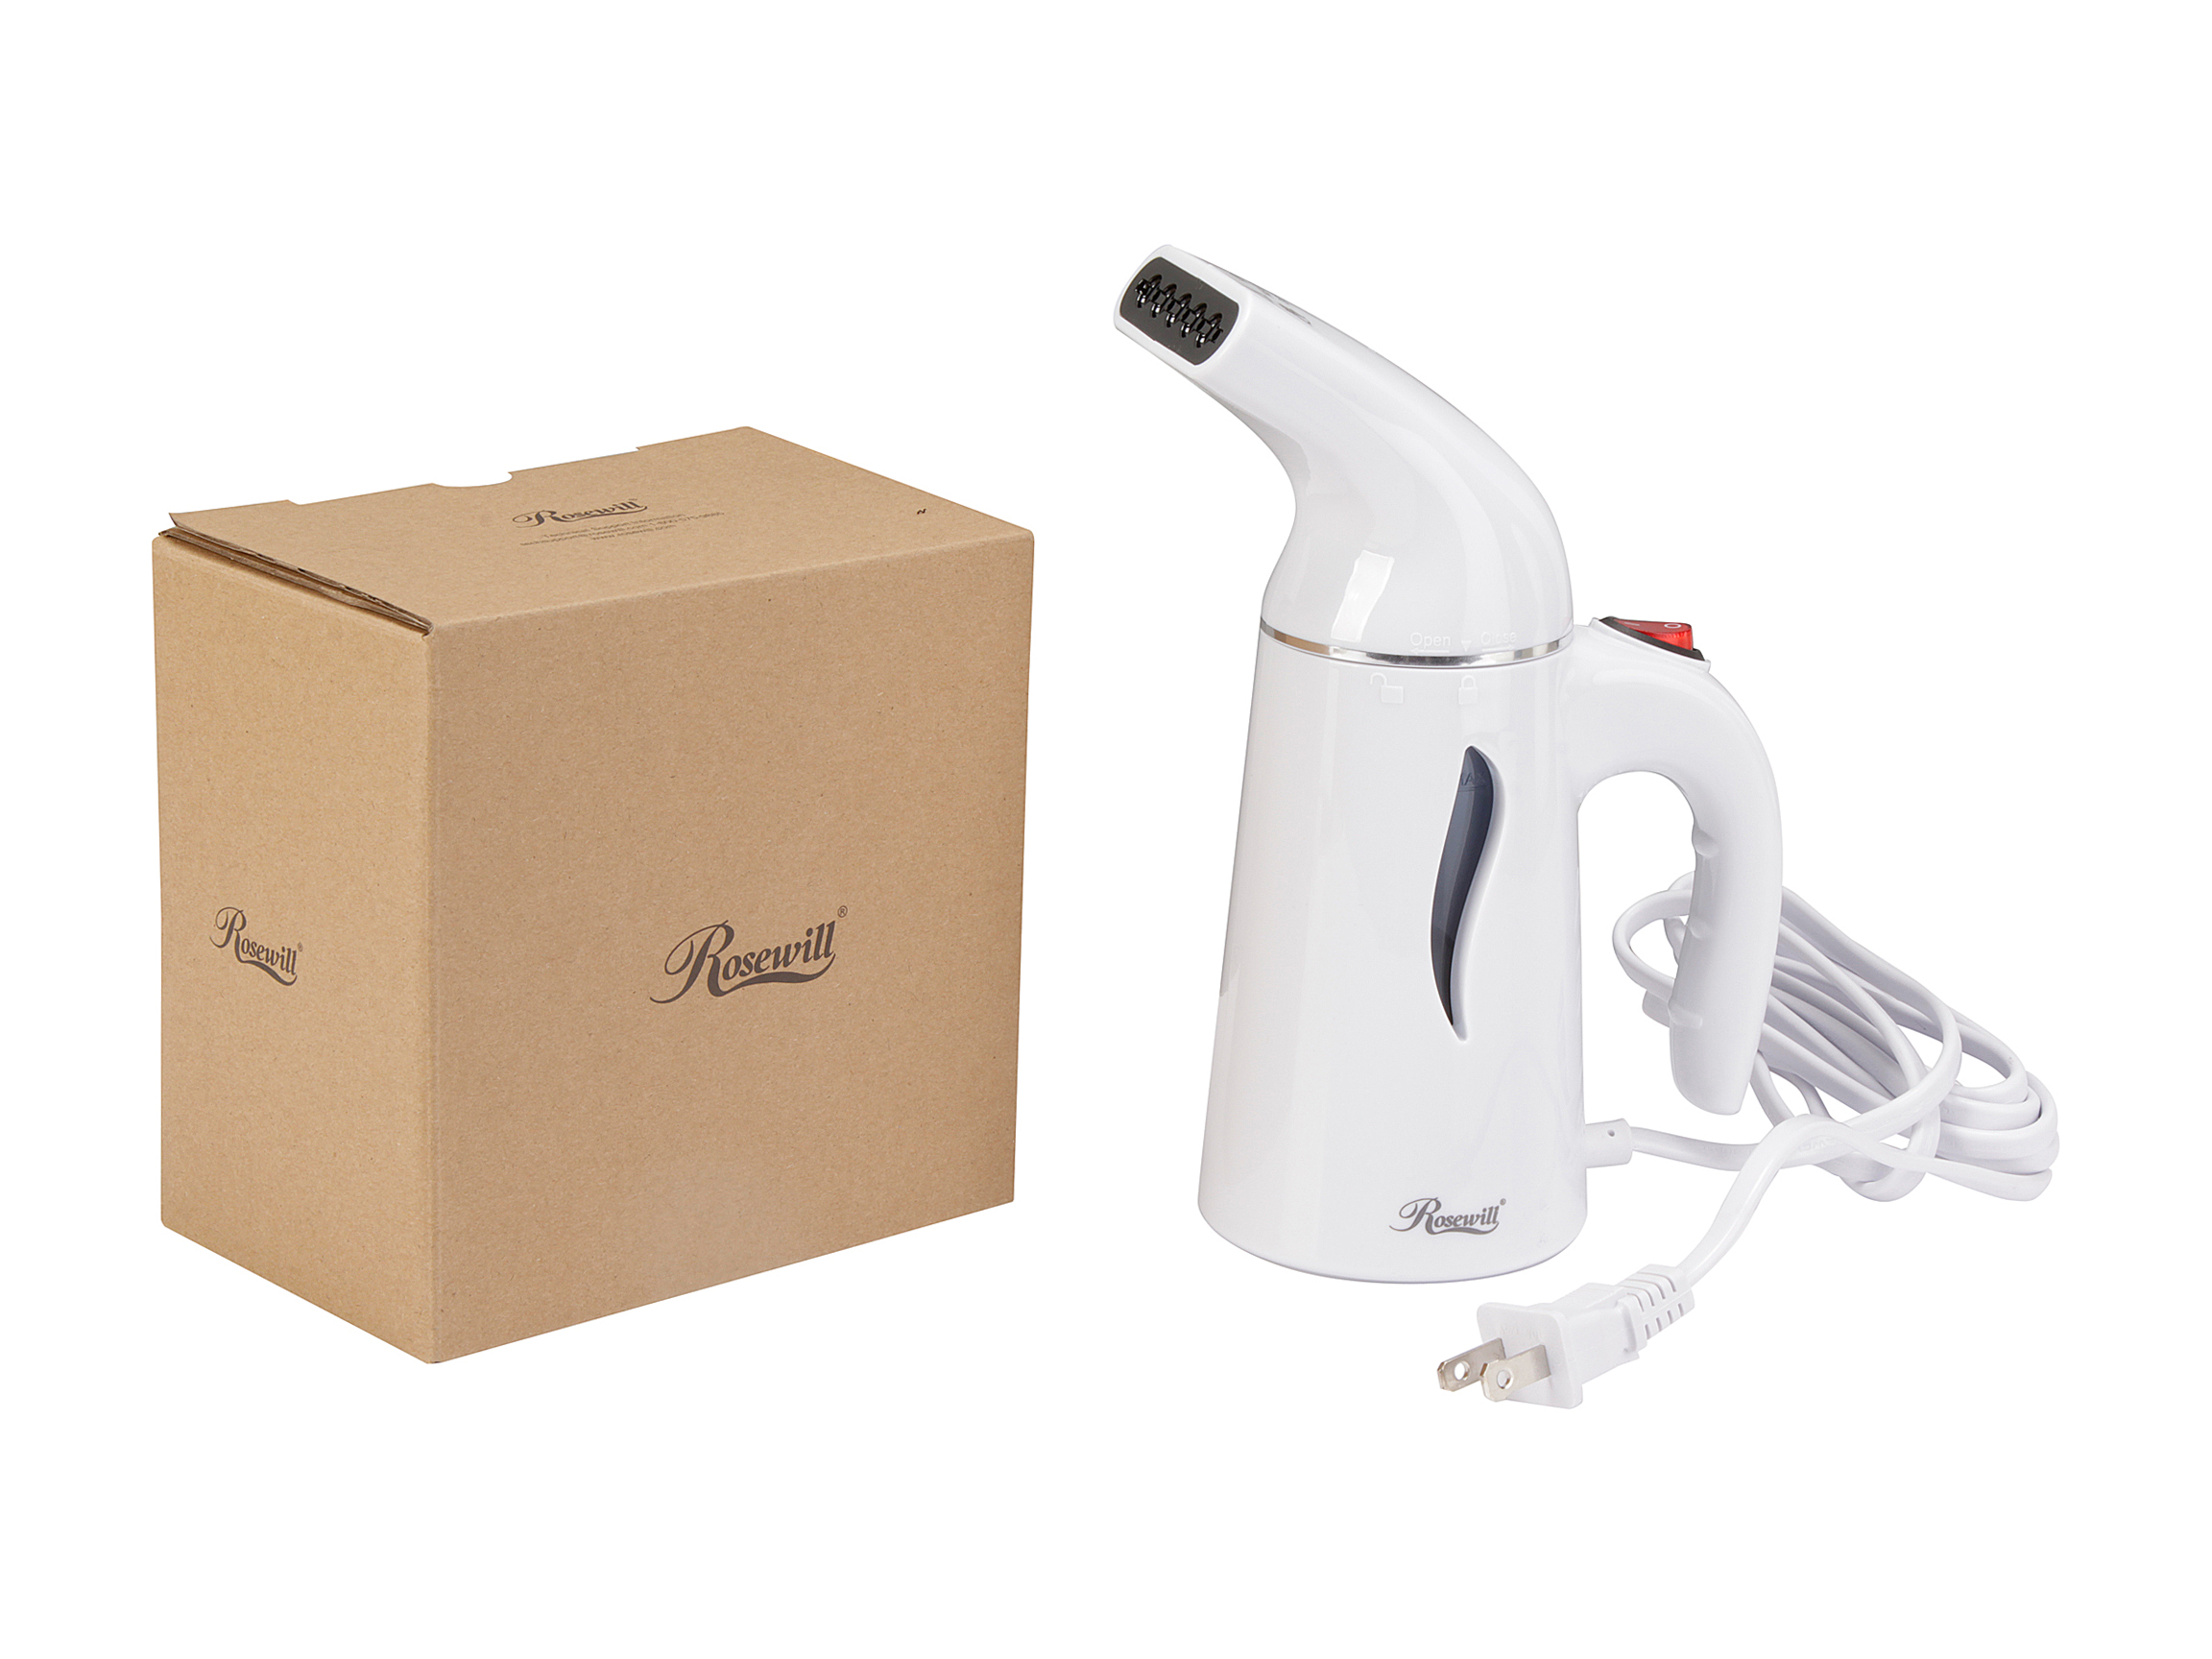 Rosewill Handheld Garment Steamer for Clothes